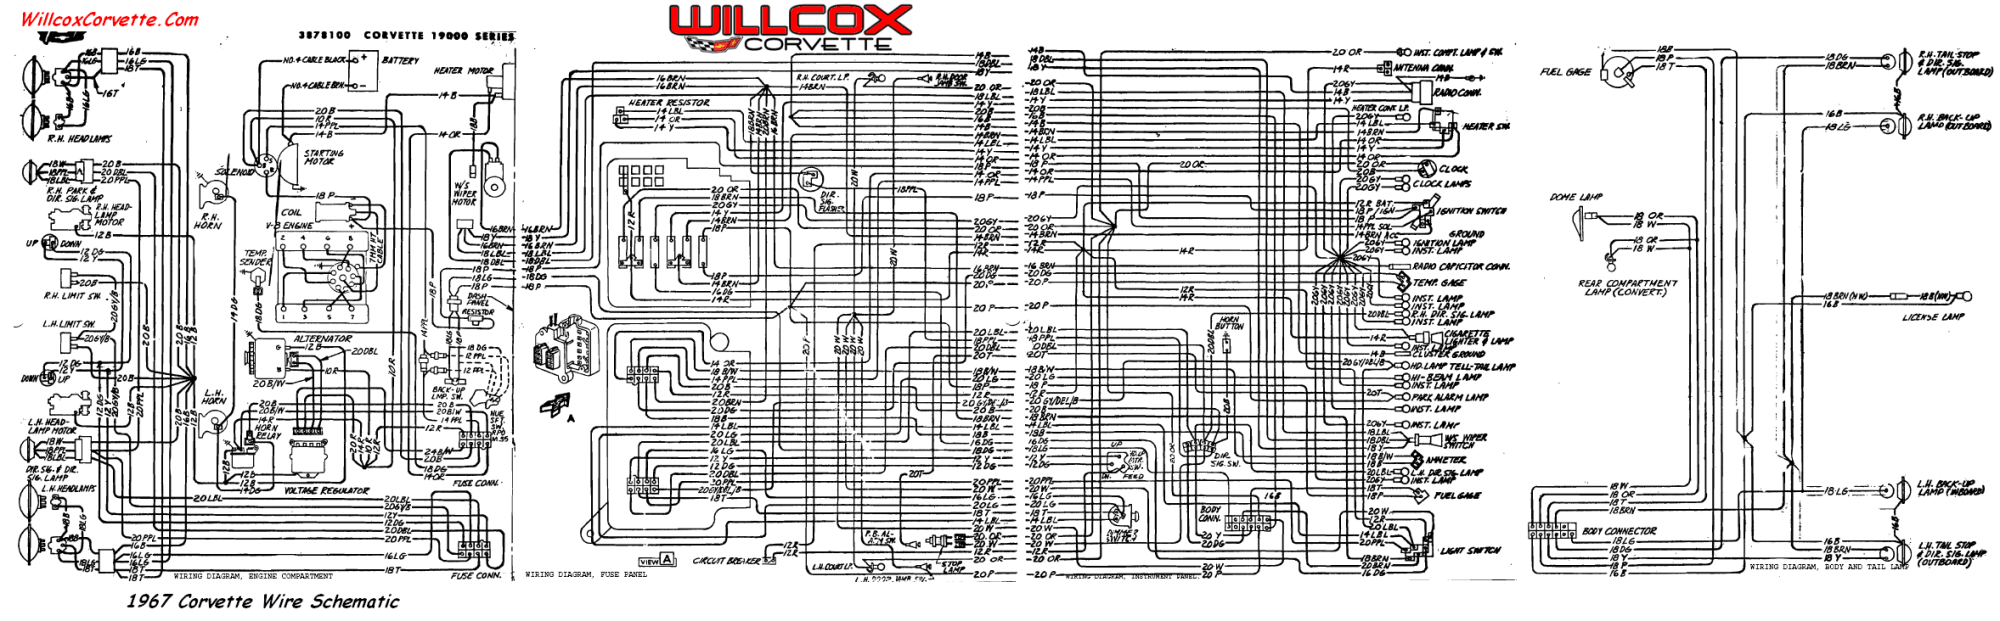 hight resolution of 74 corvette wiring diagram schematic wiring diagram third level rh 9 18 16 jacobwinterstein com 1960